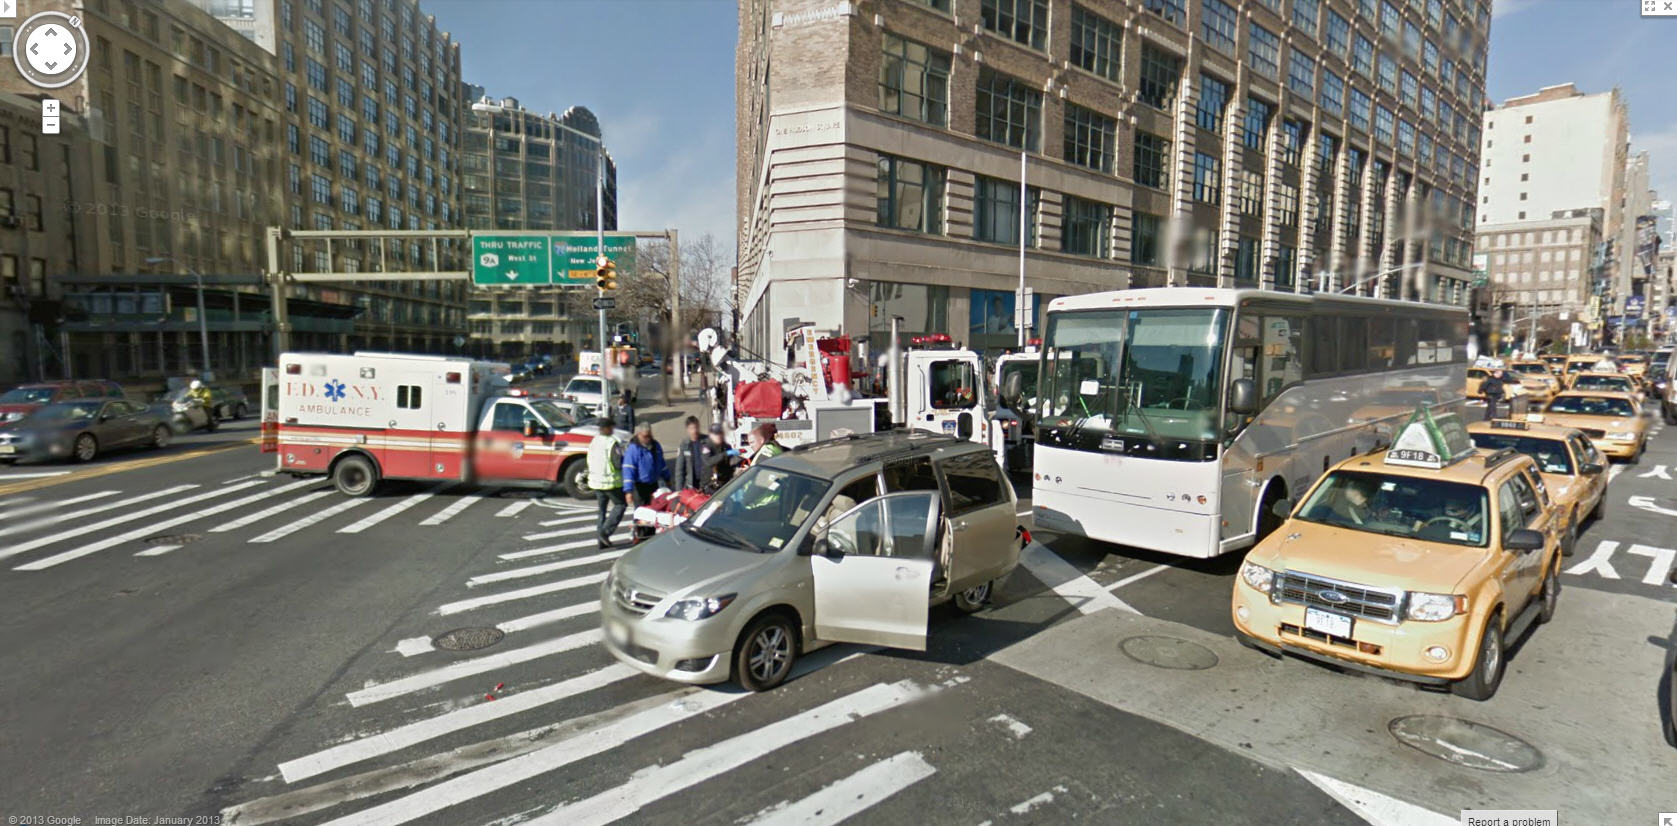 nasty accident captured by ny street view google street. Black Bedroom Furniture Sets. Home Design Ideas